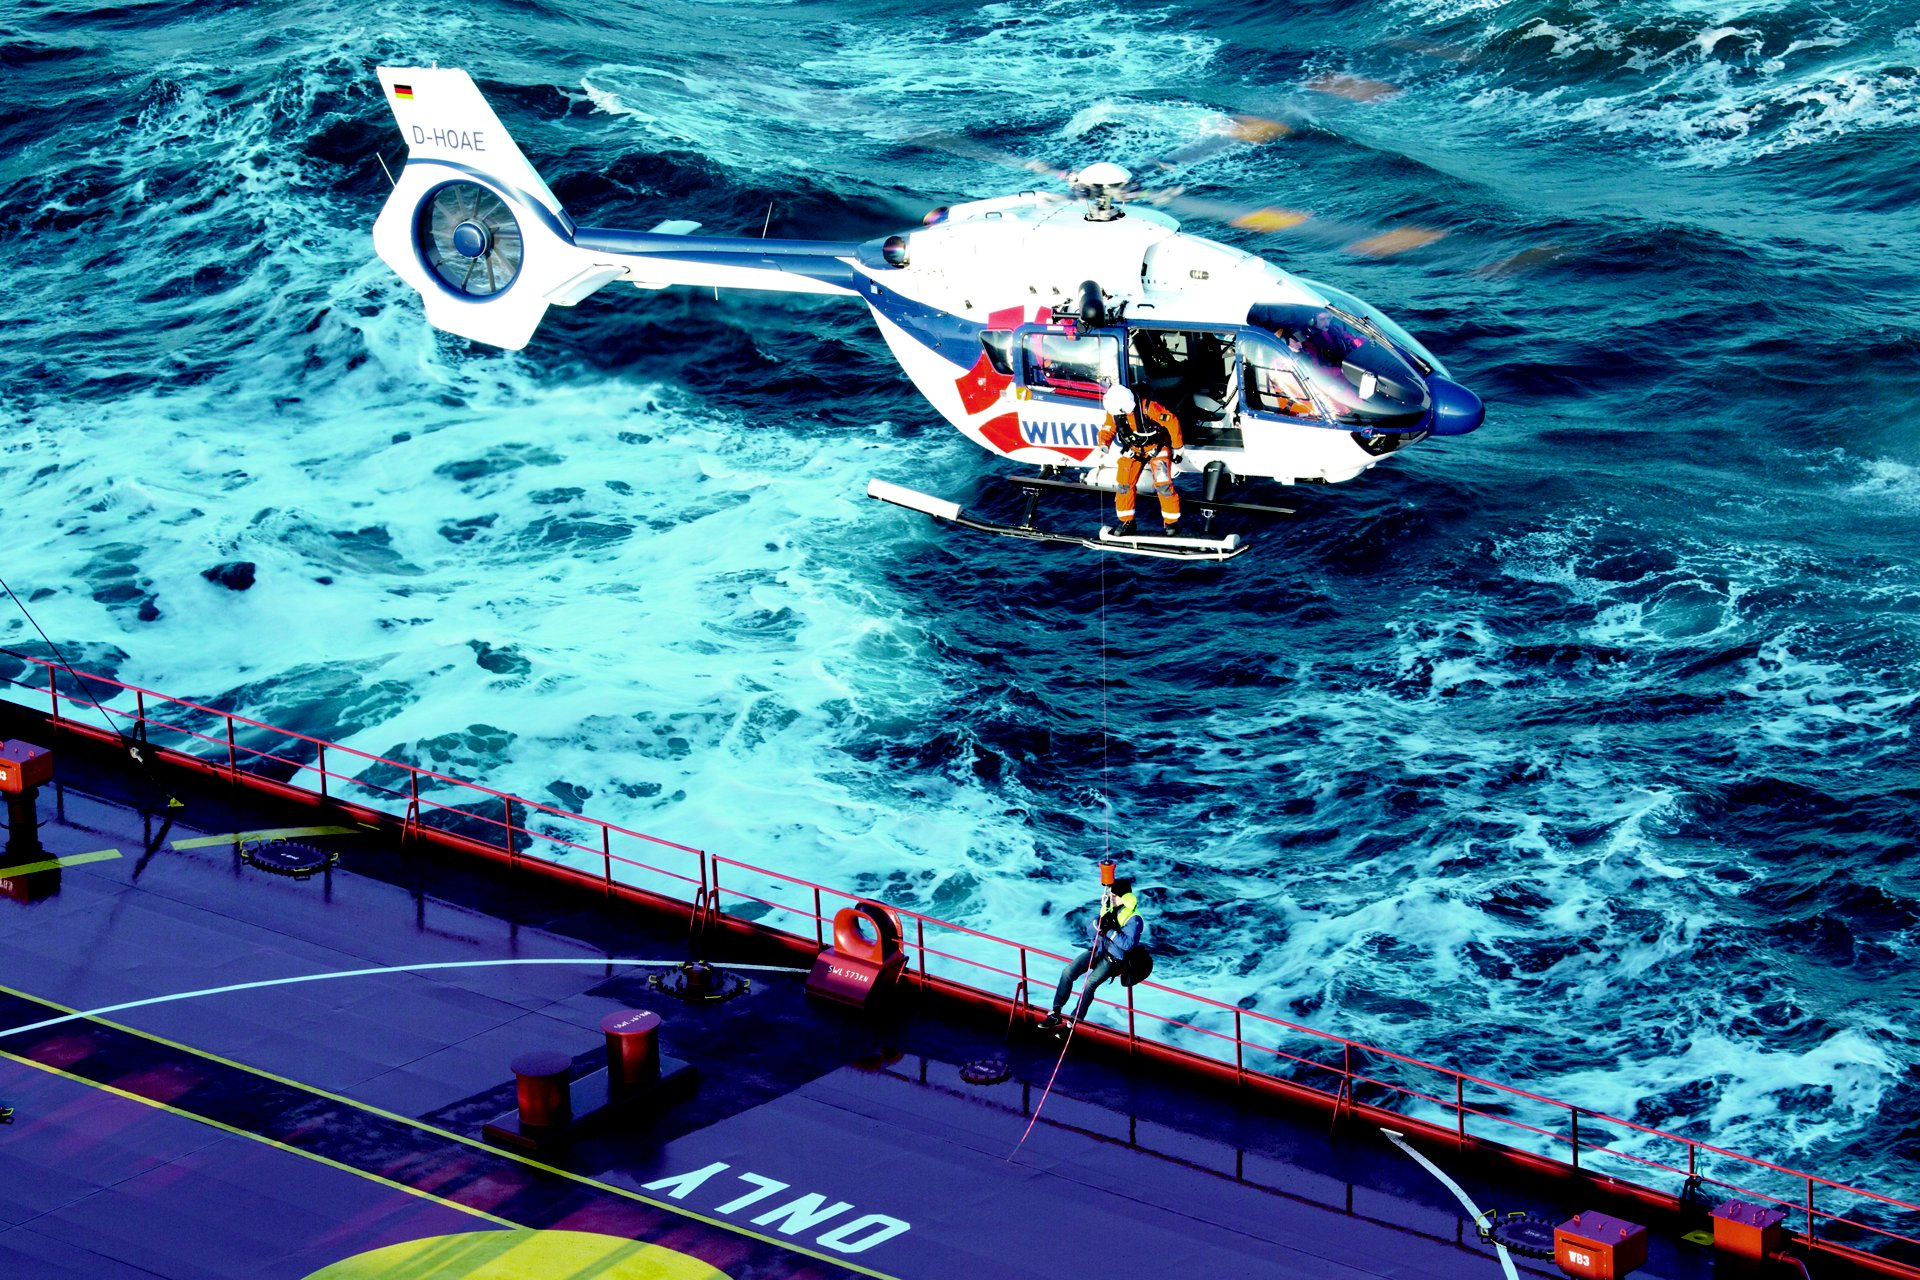 Sea support: 